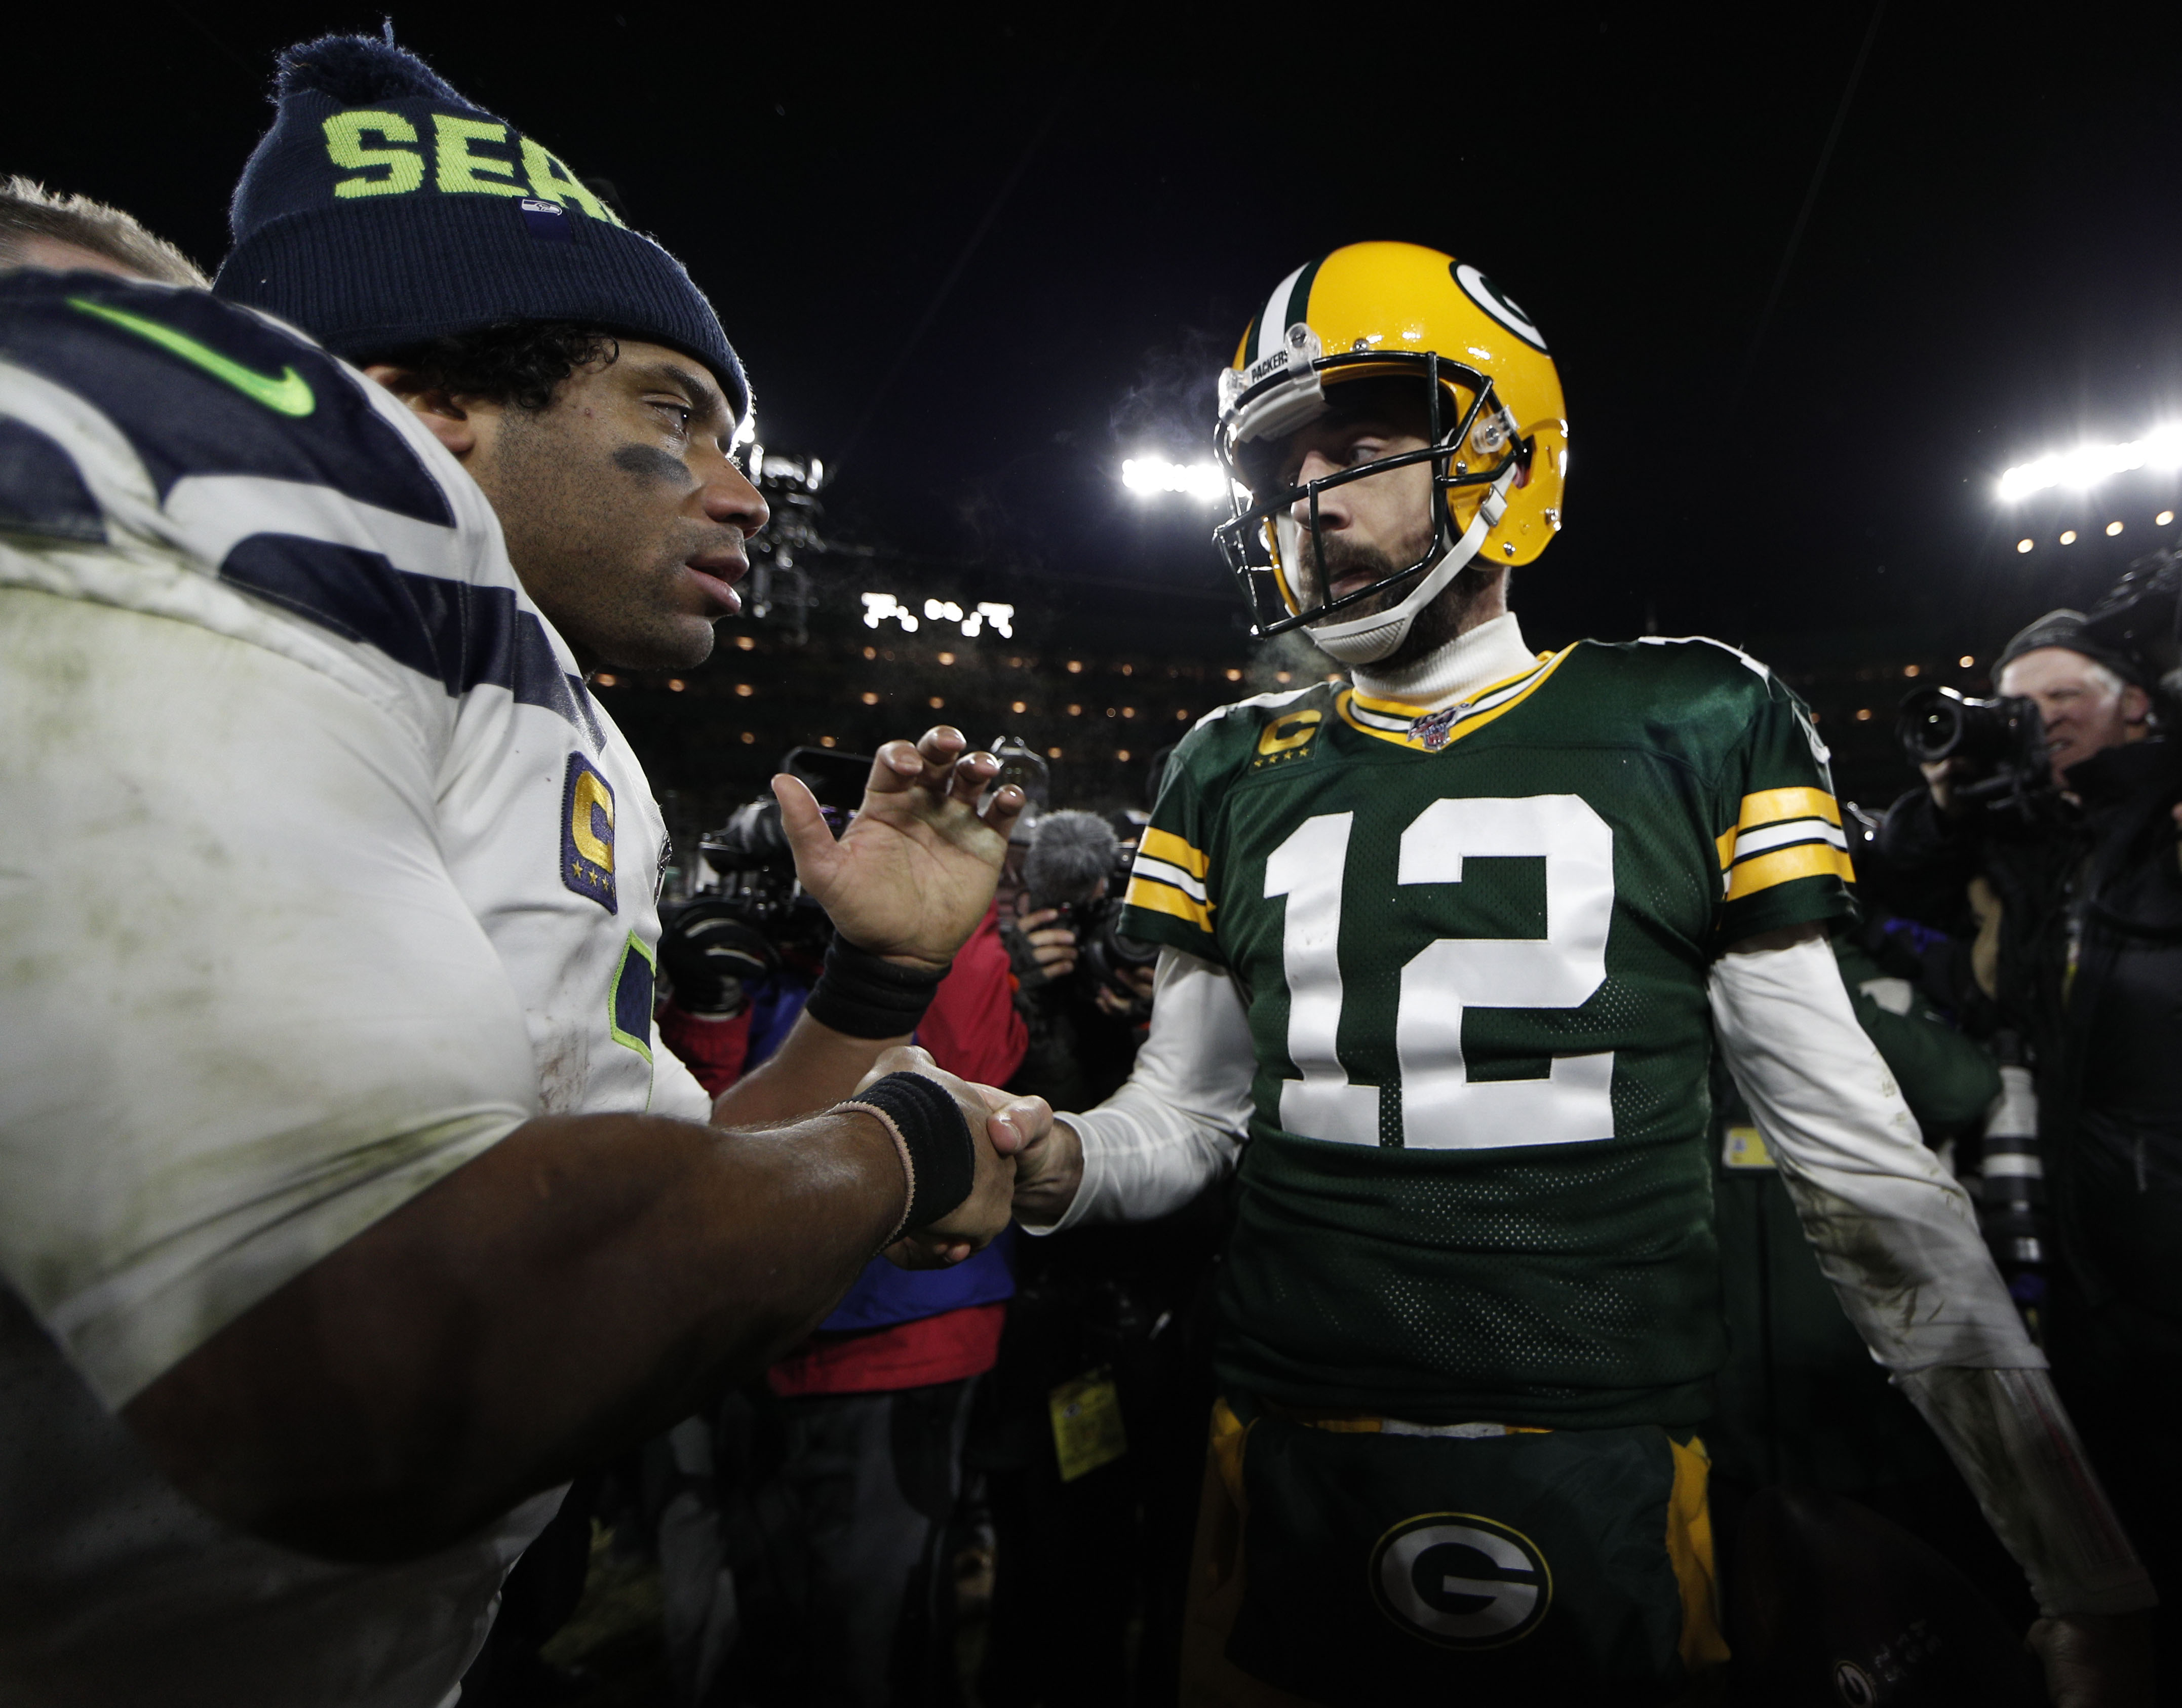 The Packers Have Exceled in the Cold in Home Divisional Playoff Games